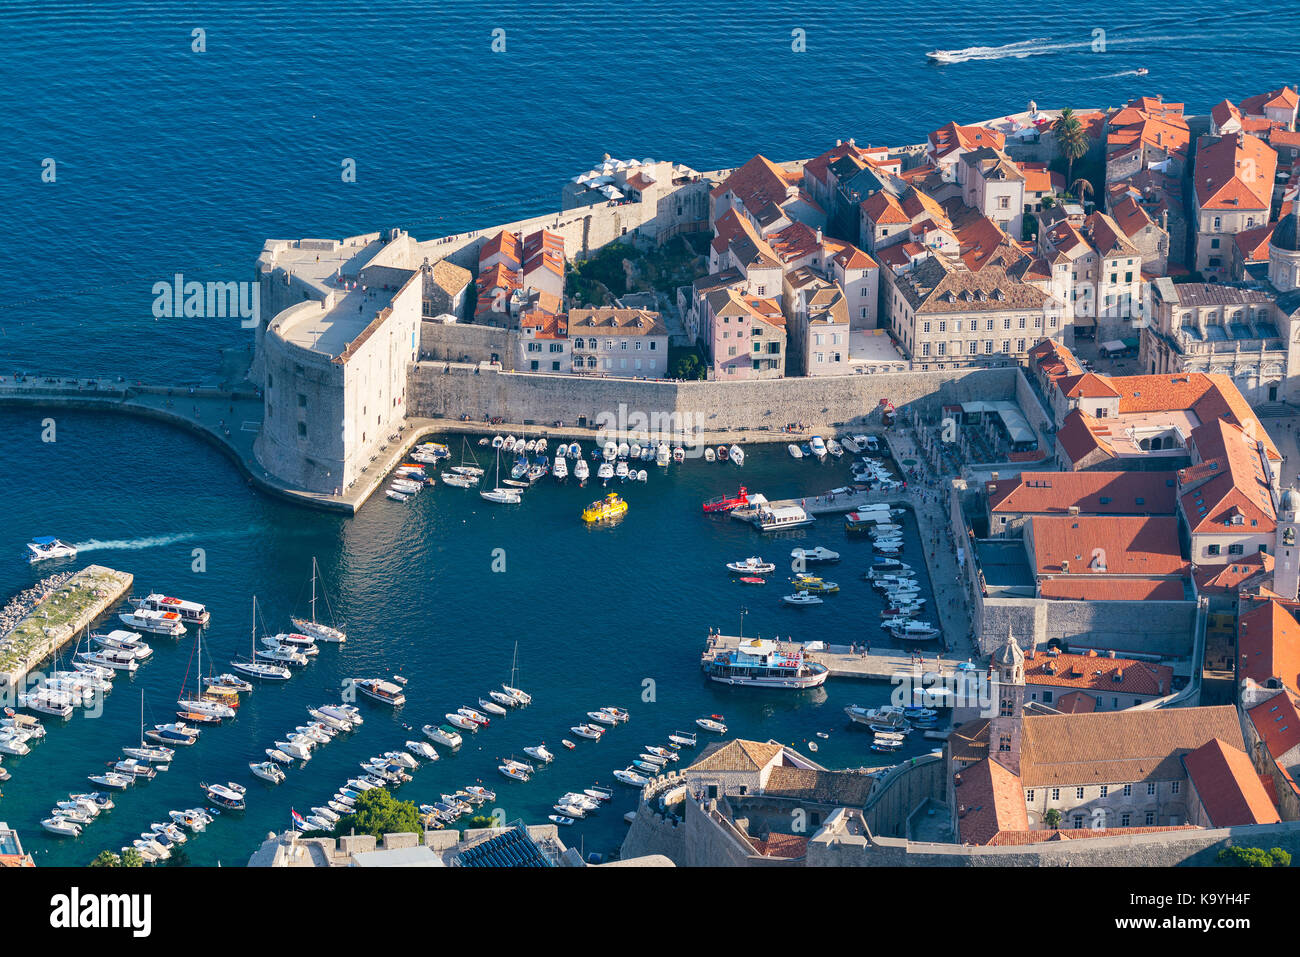 Fortress of st ivan and the marina in the old dubrovnik stock photo fortress of st ivan and the marina in the old dubrovnik publicscrutiny Gallery